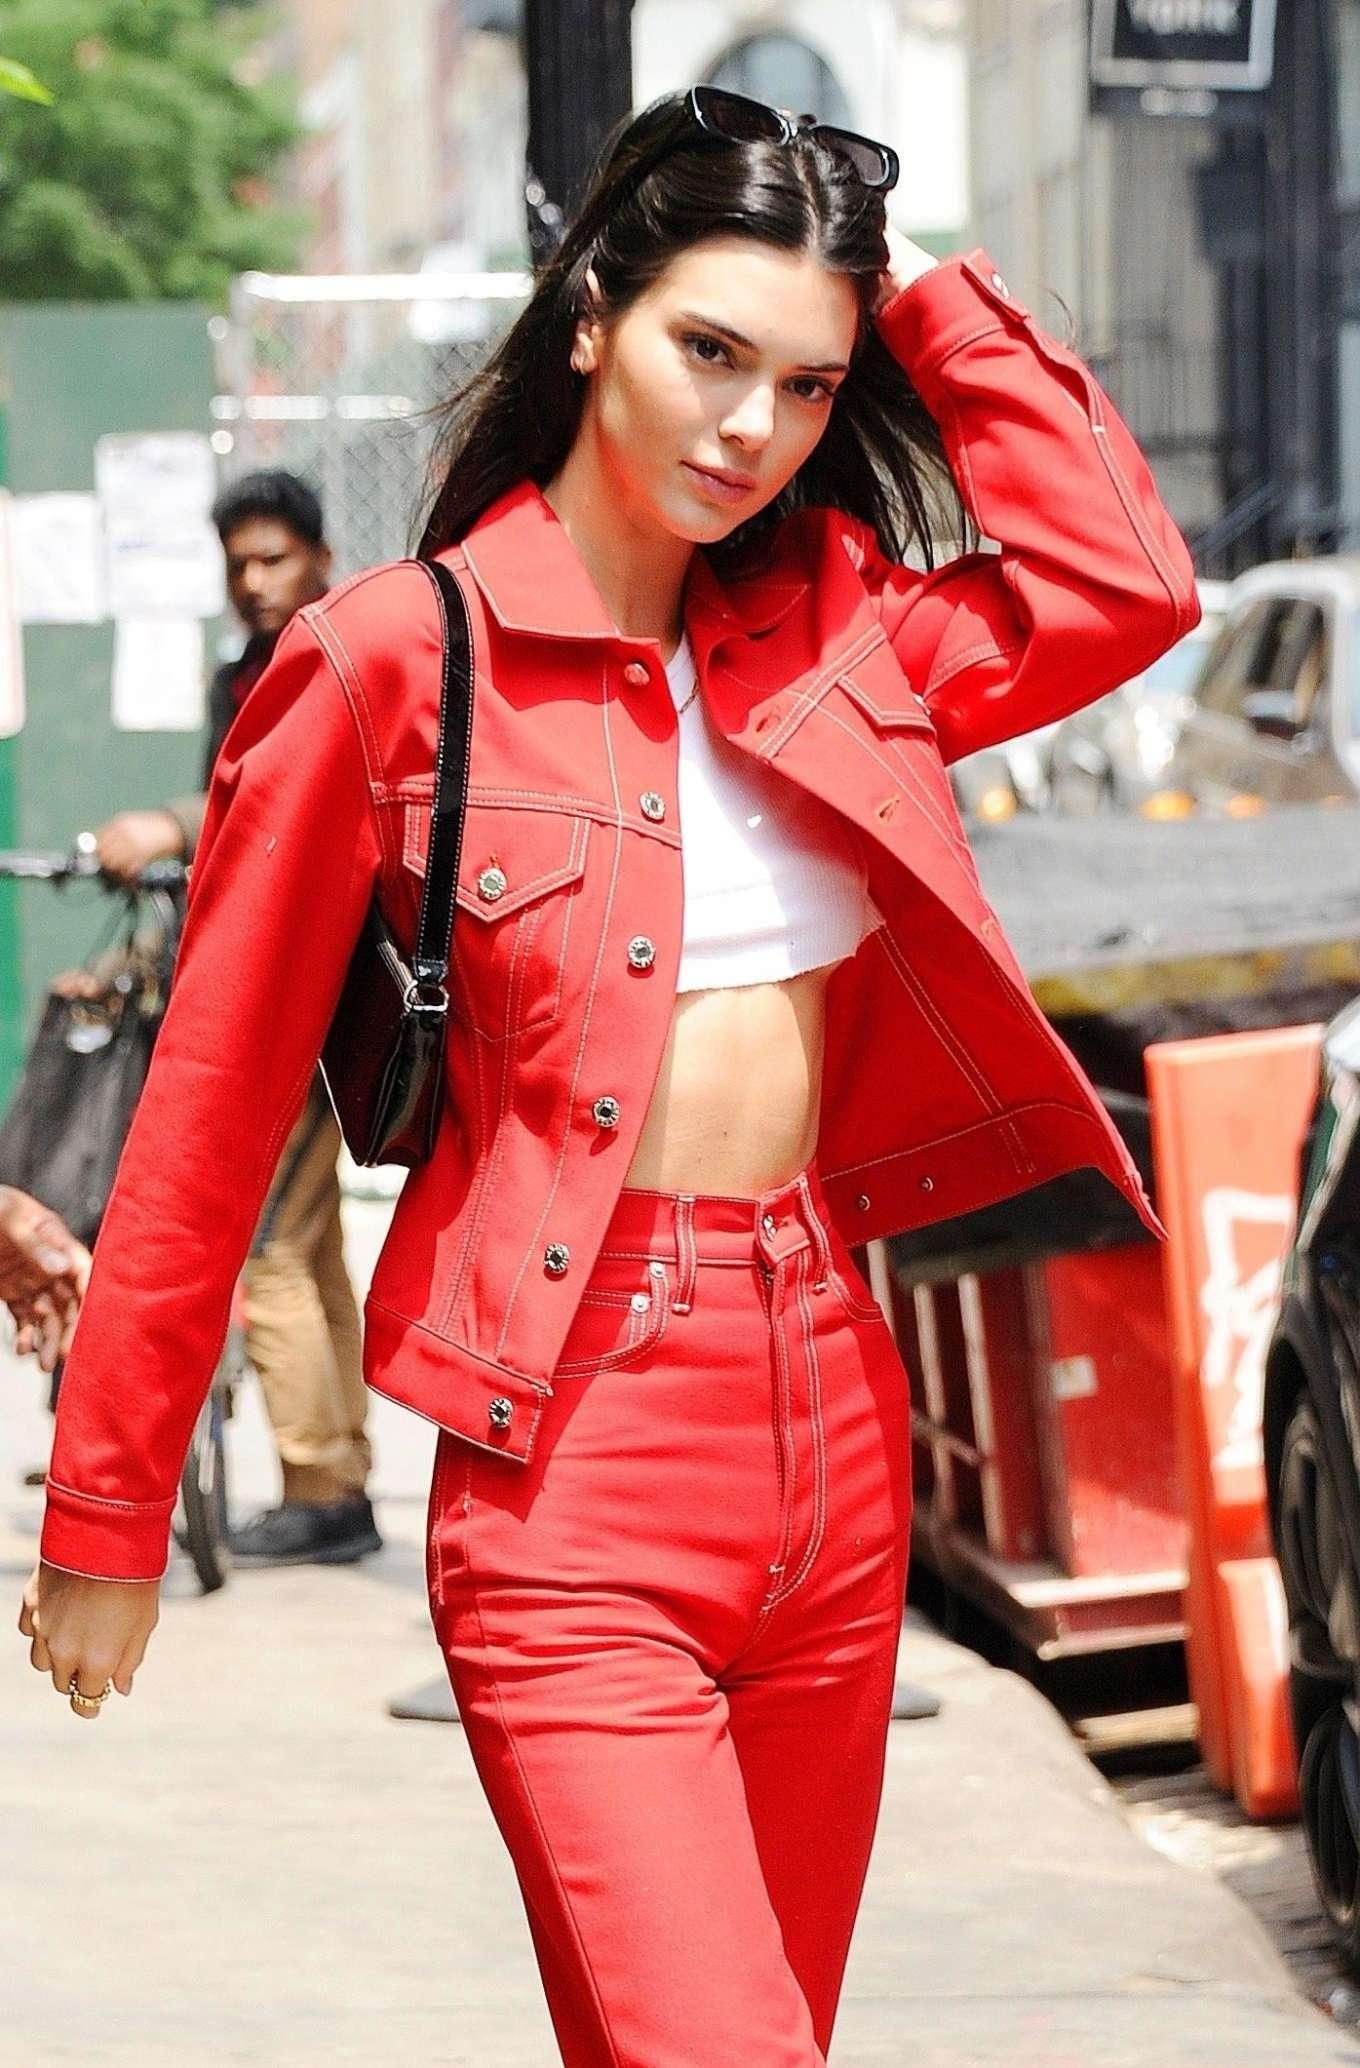 Kendall Jenner in Red Outfit - Out in NYC